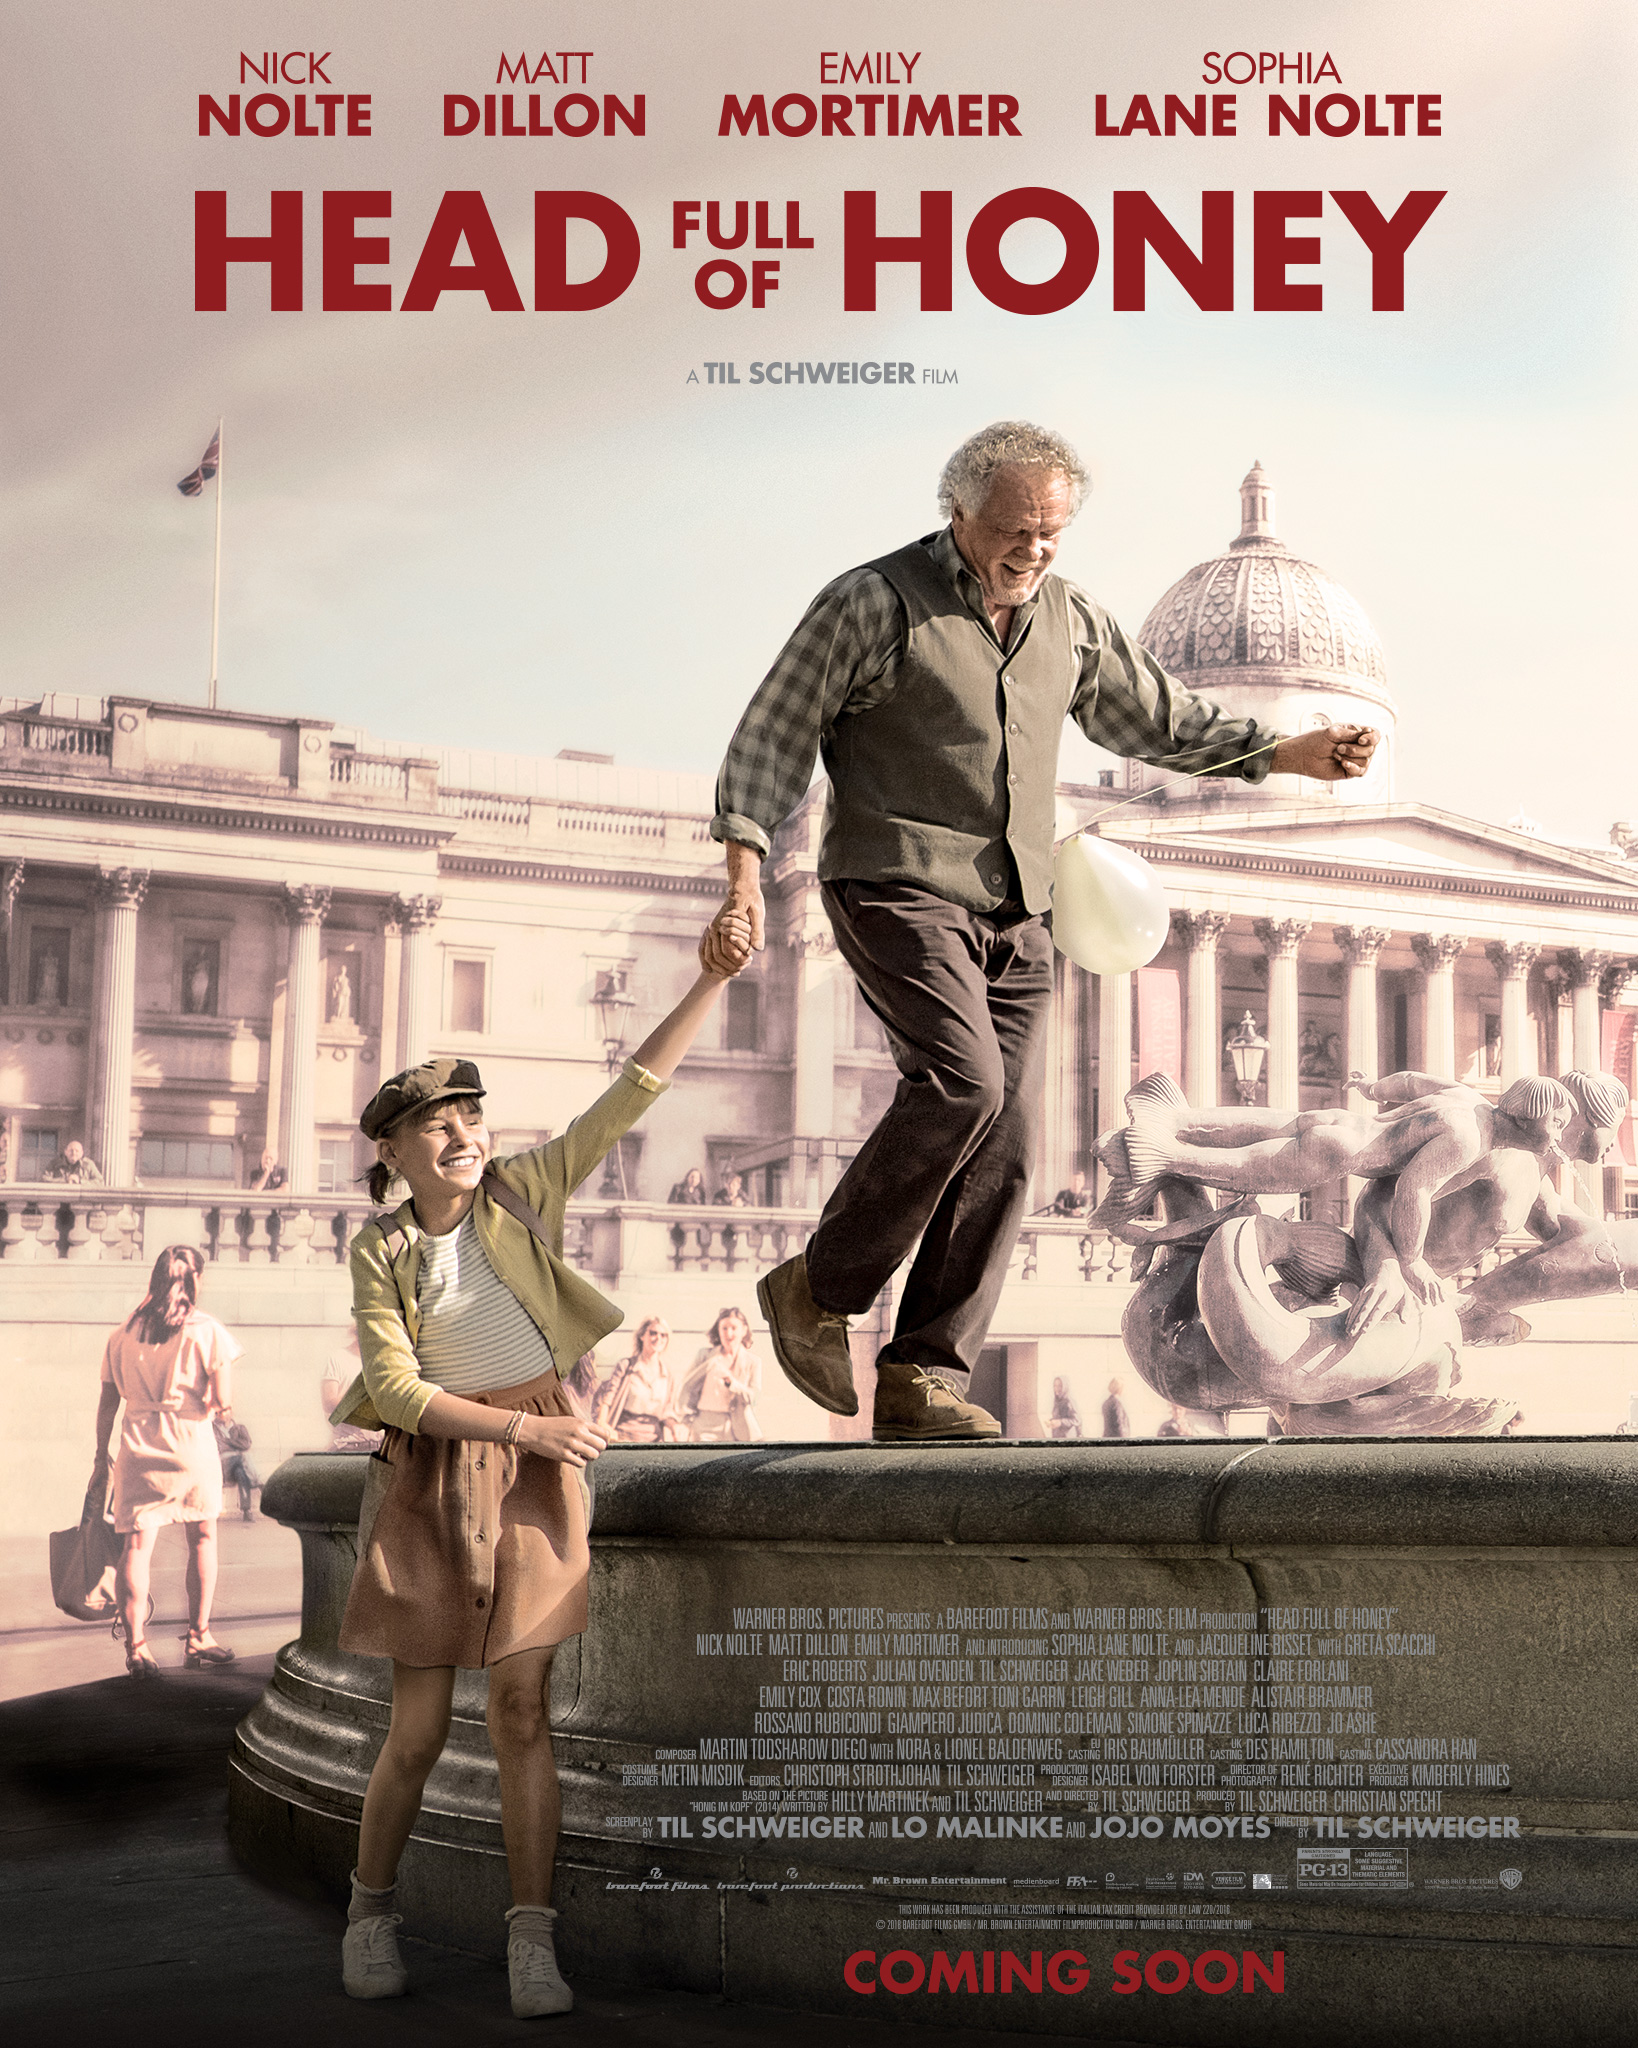 HFHNY INSTA VERT MAIN DOM 1638x2048 master - Trailer de Head Full of Honey con Nick Nolte